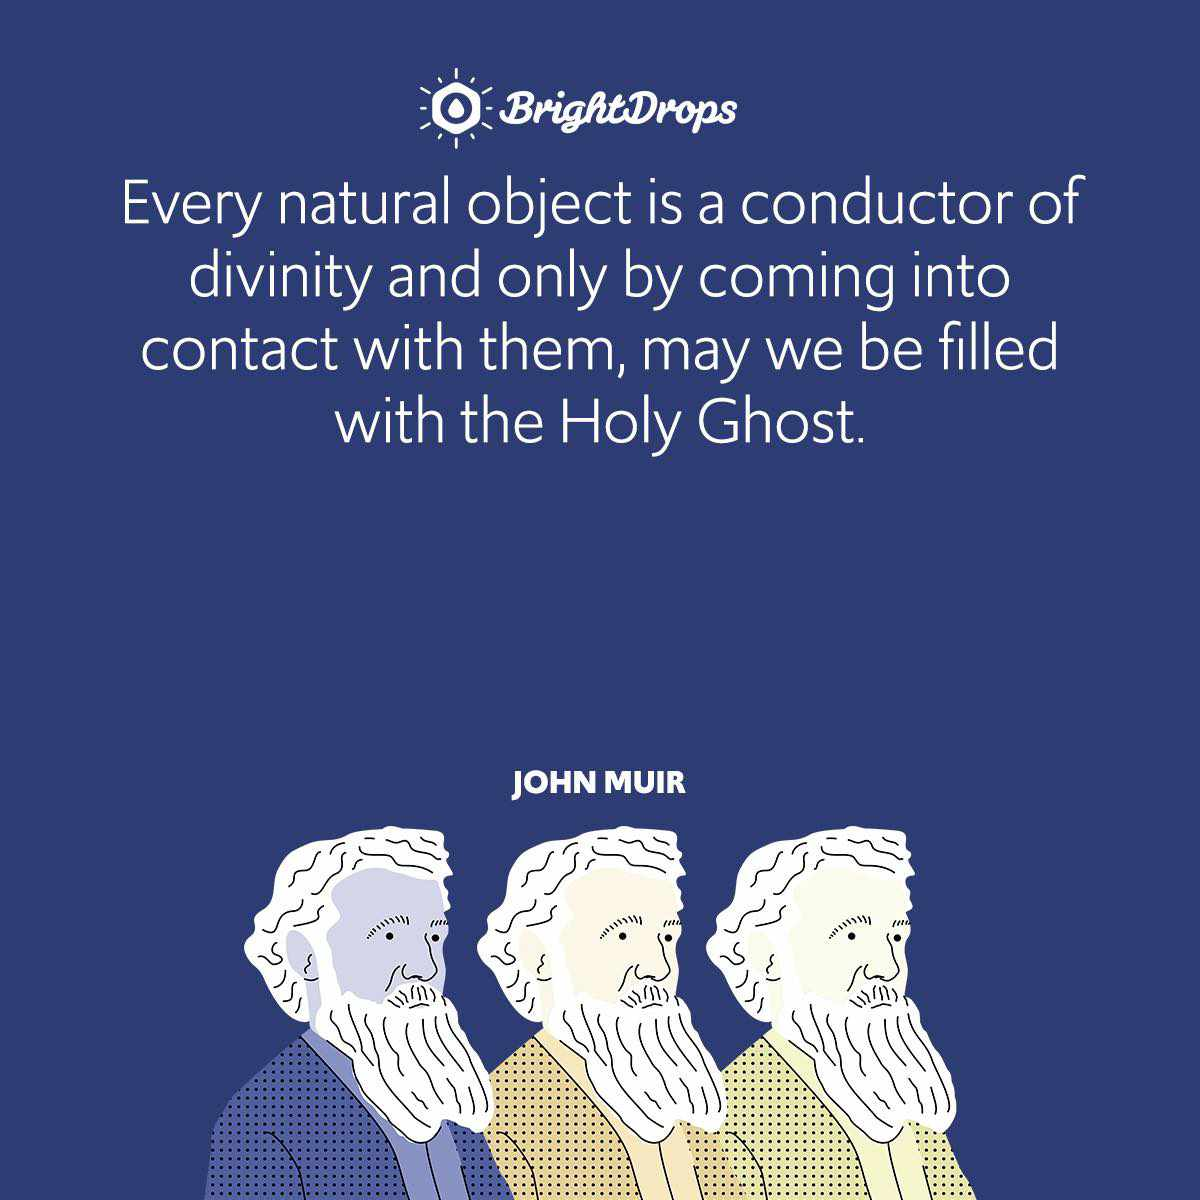 Every natural object is a conductor of divinity and only by coming into contact with them, may we be filled with the Holy Ghost.